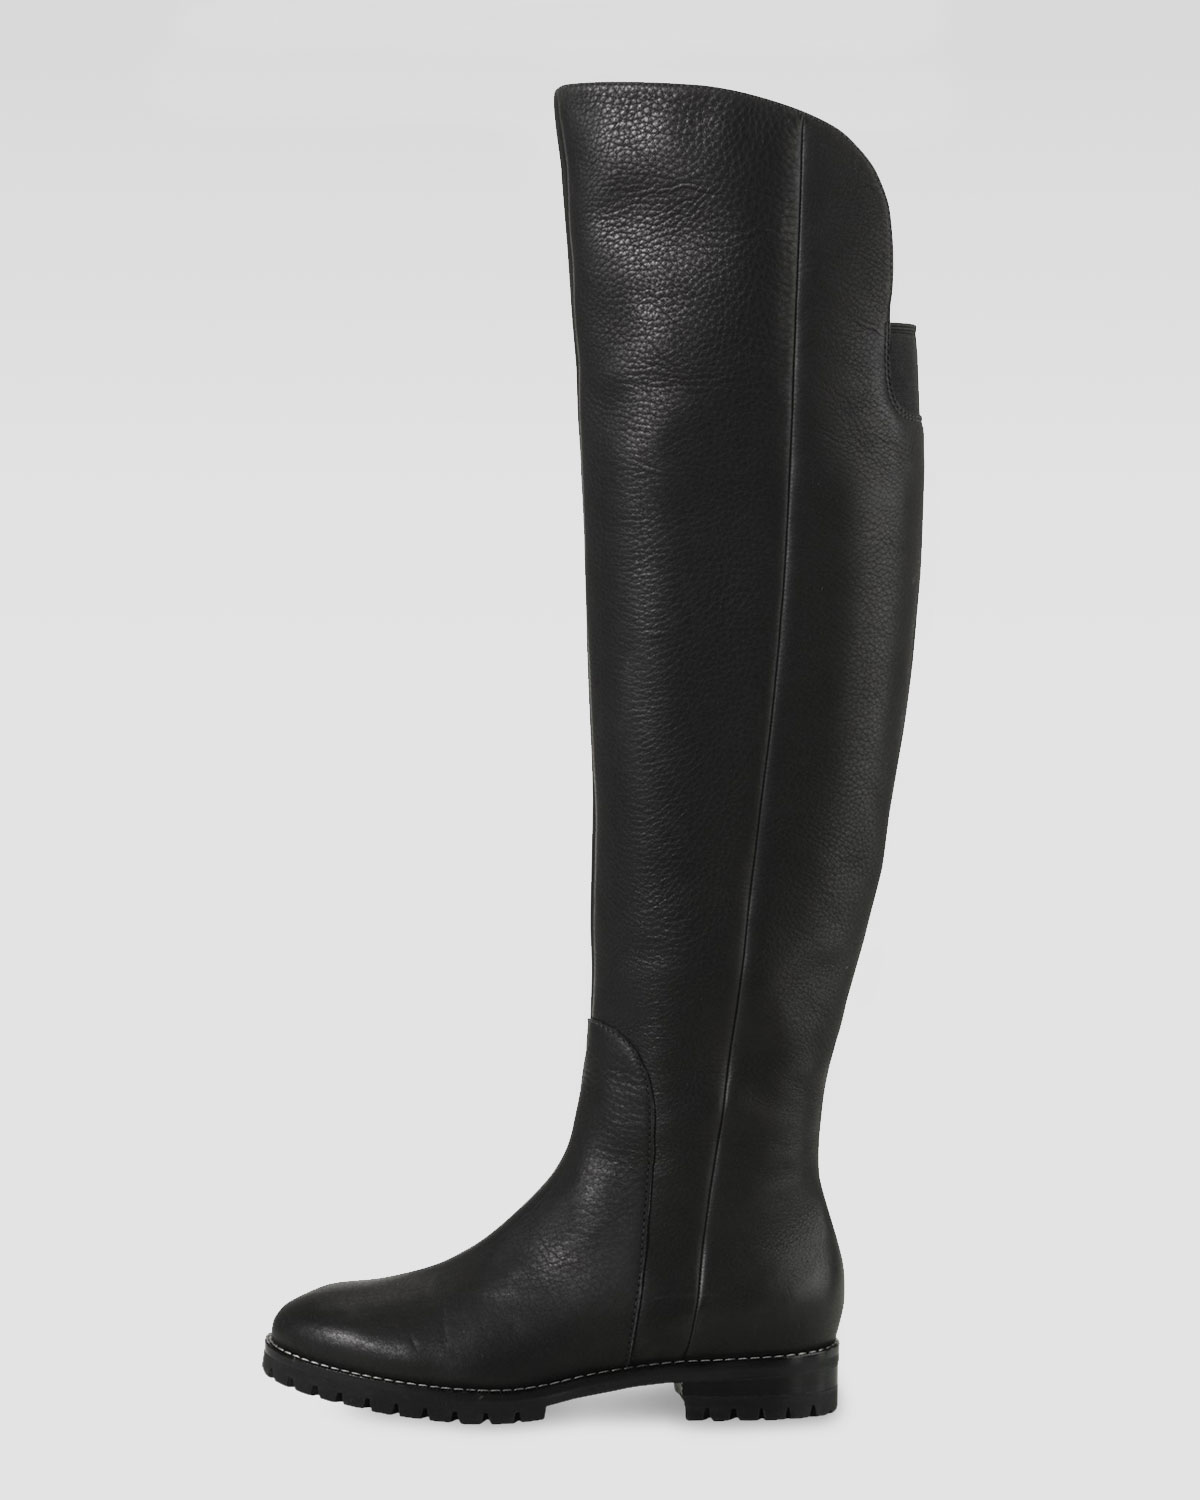 Cole haan Estella Waterproof Over the knee Boot in Black | Lyst